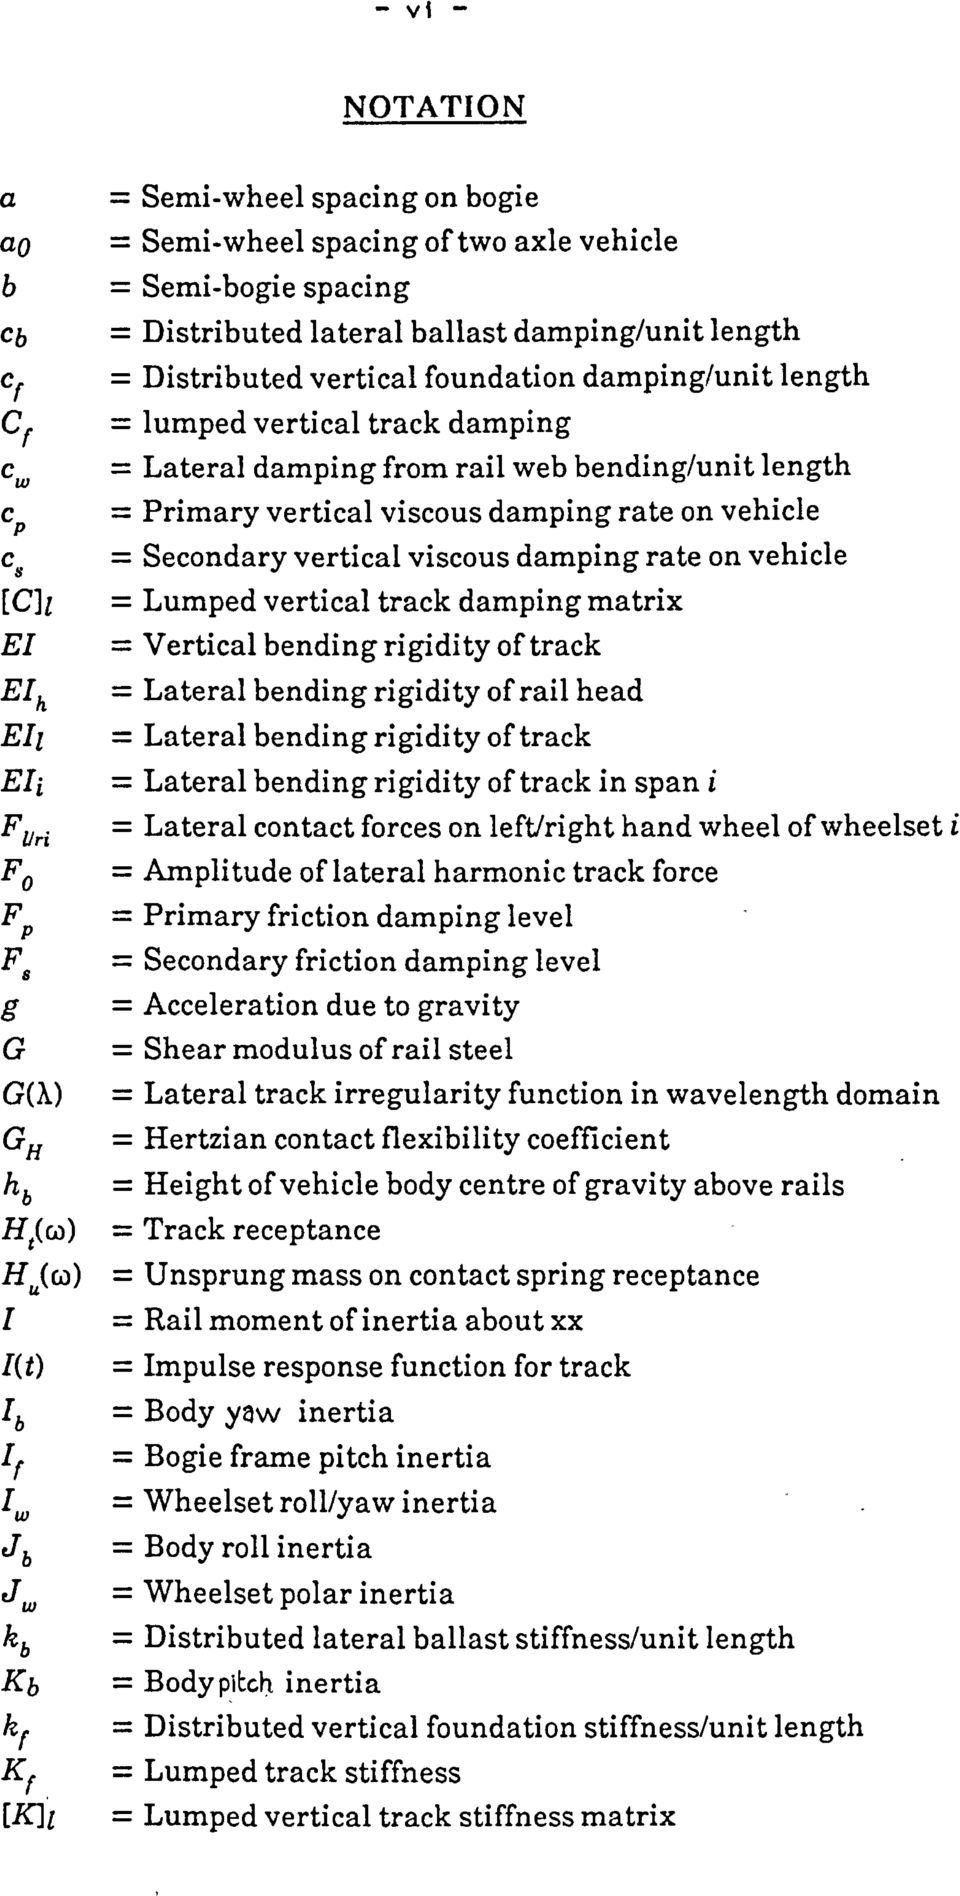 viscous damping rate on vehicle [C]l = Lumped vertical track damping matrix EI = Vertical bending rigidity of track EIh = Lateral bending rigidity of rail head EIl = Lateral bending rigidity of track